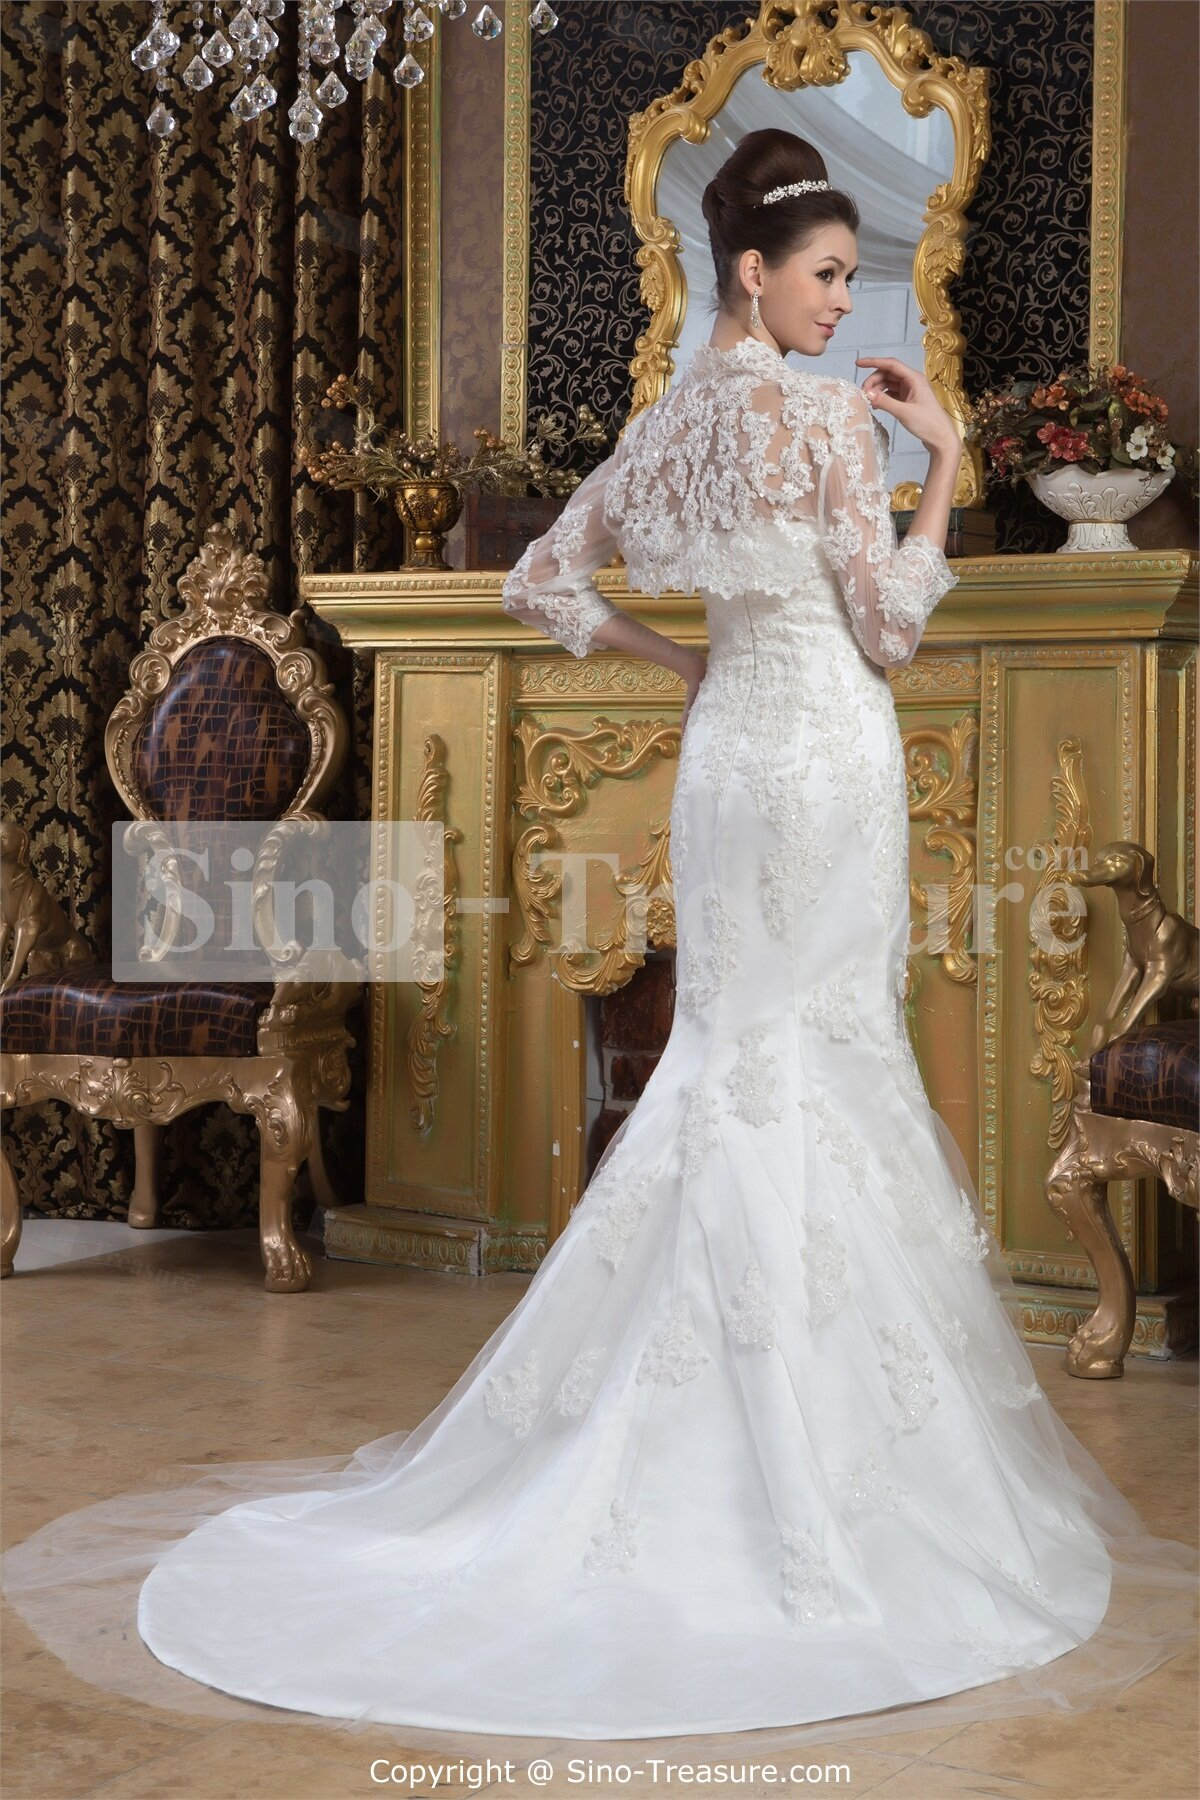 Wedding Dresses For Petite Girls Pictures Ideas Guide To Buying Stylish W